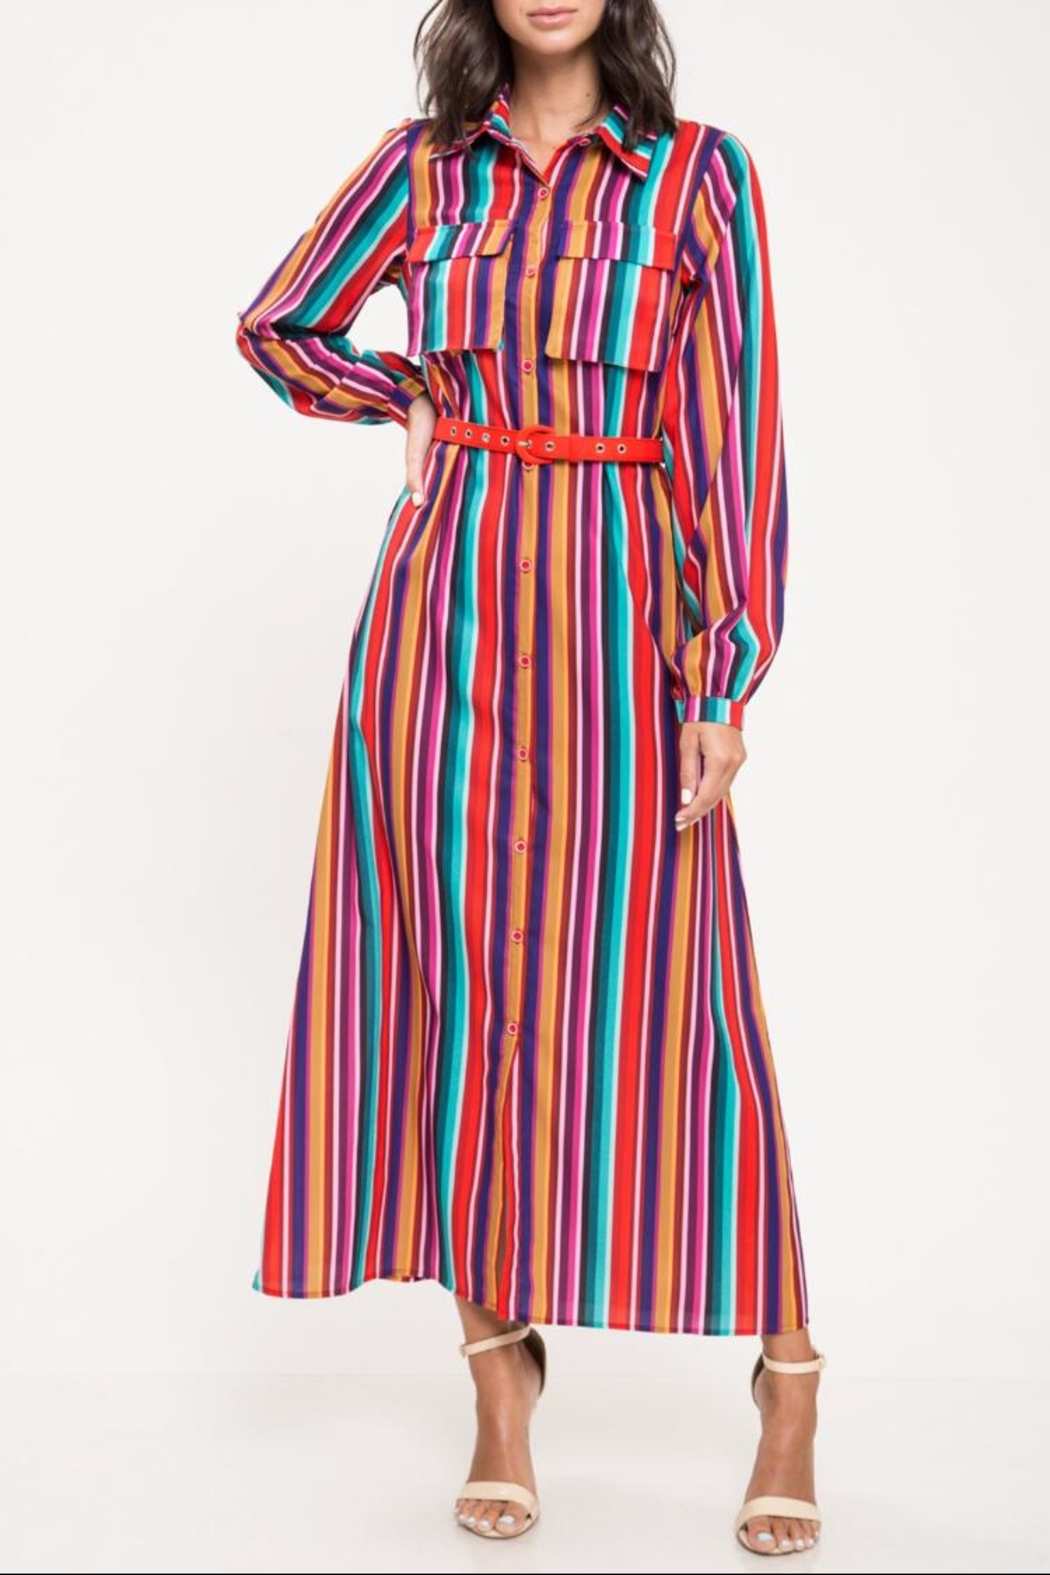 d4e7e339c5042 Latiste Multi-Colored Stripe Dress from Los Angeles by Chikas ...